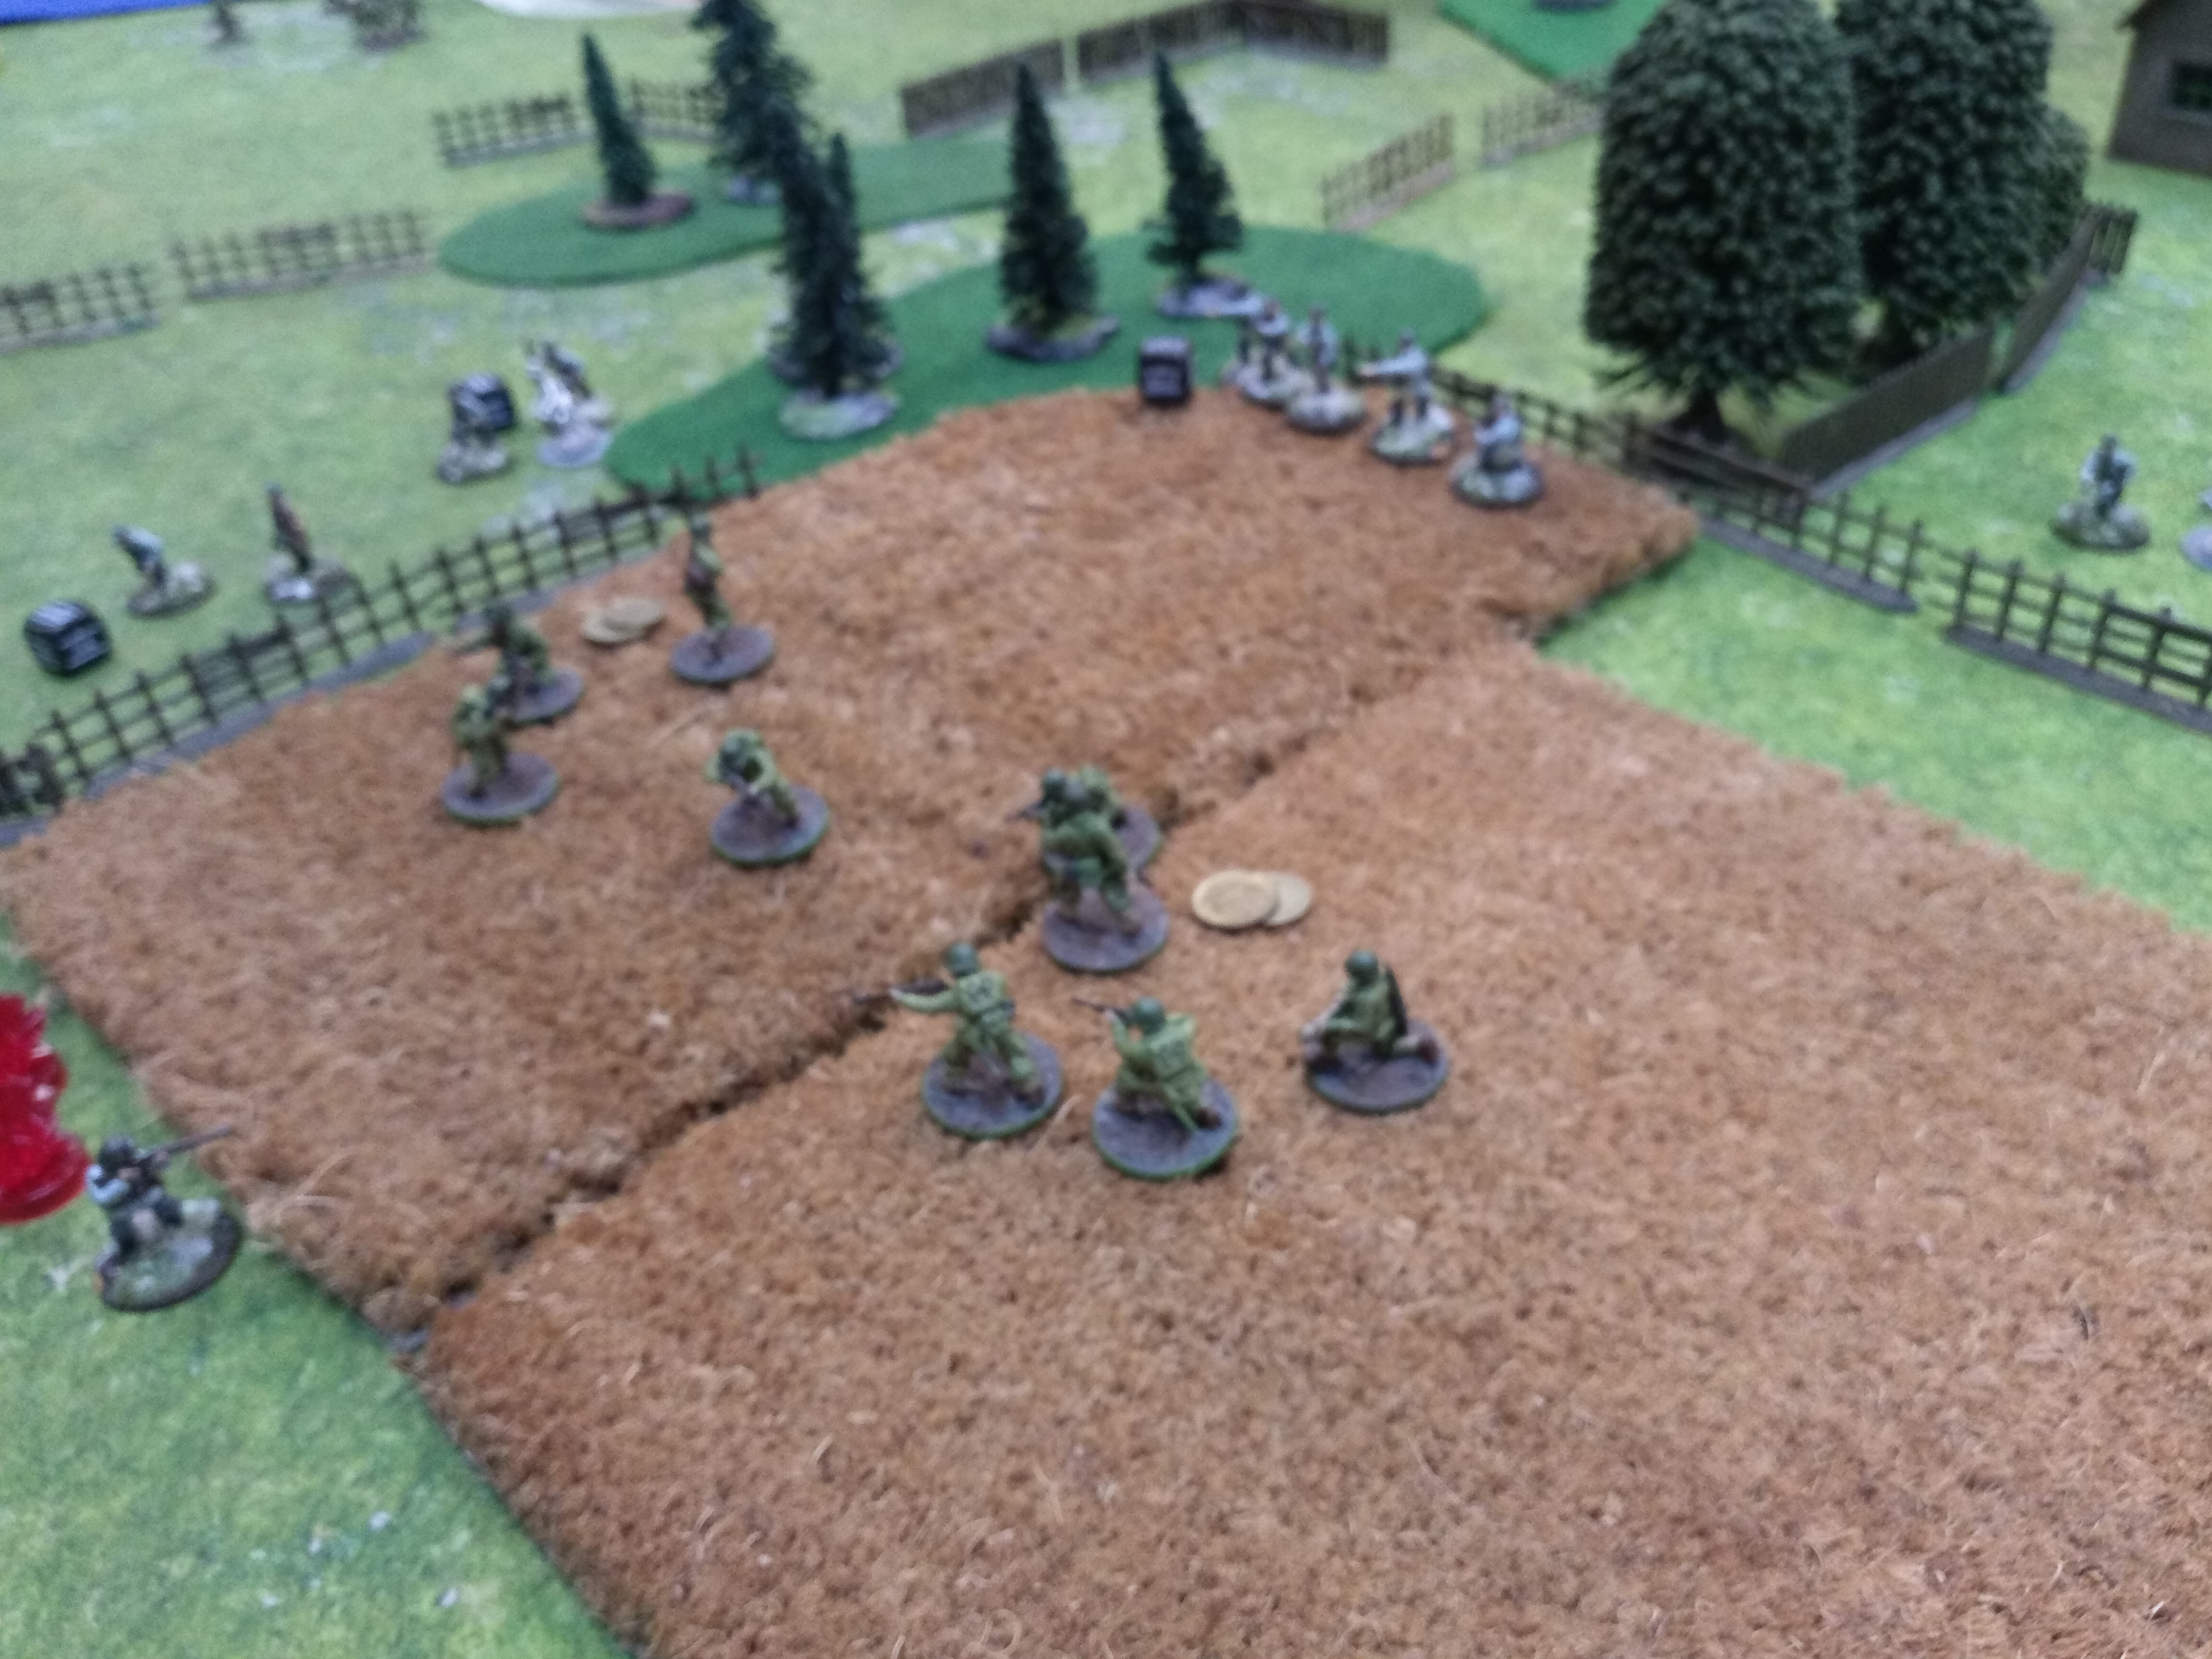 Simo Hayha versus White Fire Batalion in a fierce infantry engagement